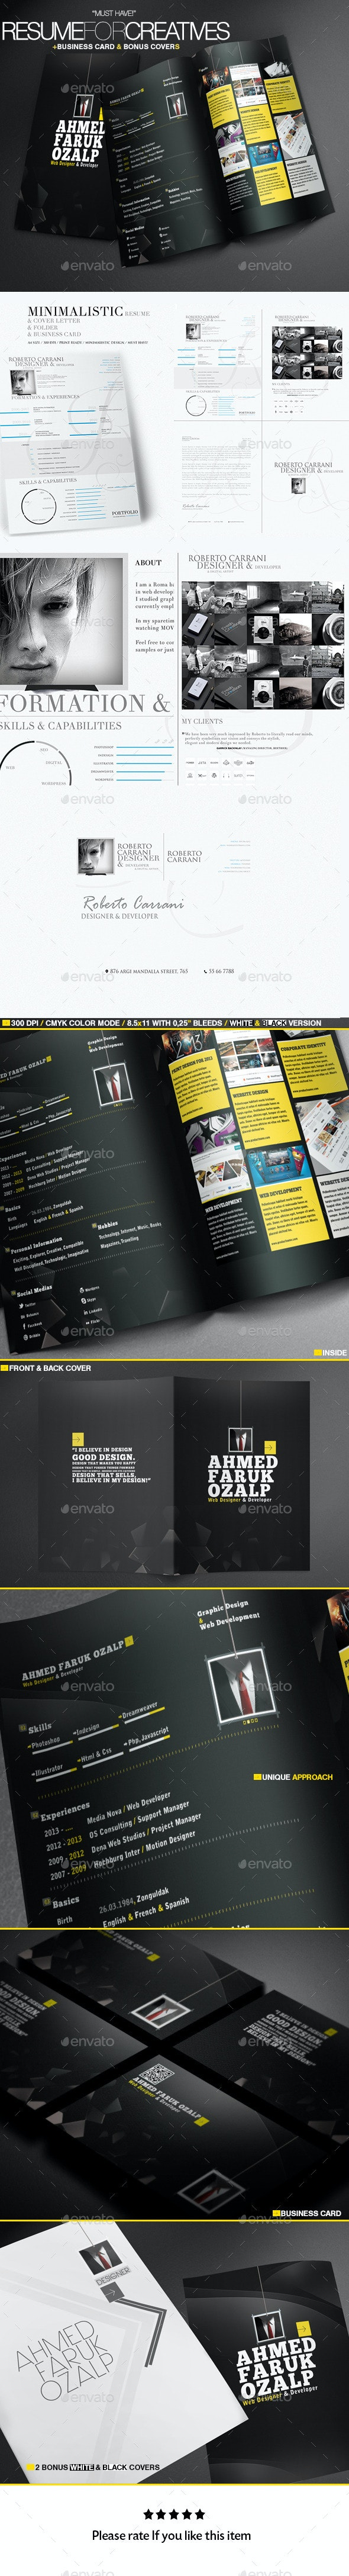 A Great Deal Creative Resume Templates 2in1 - Resumes Stationery